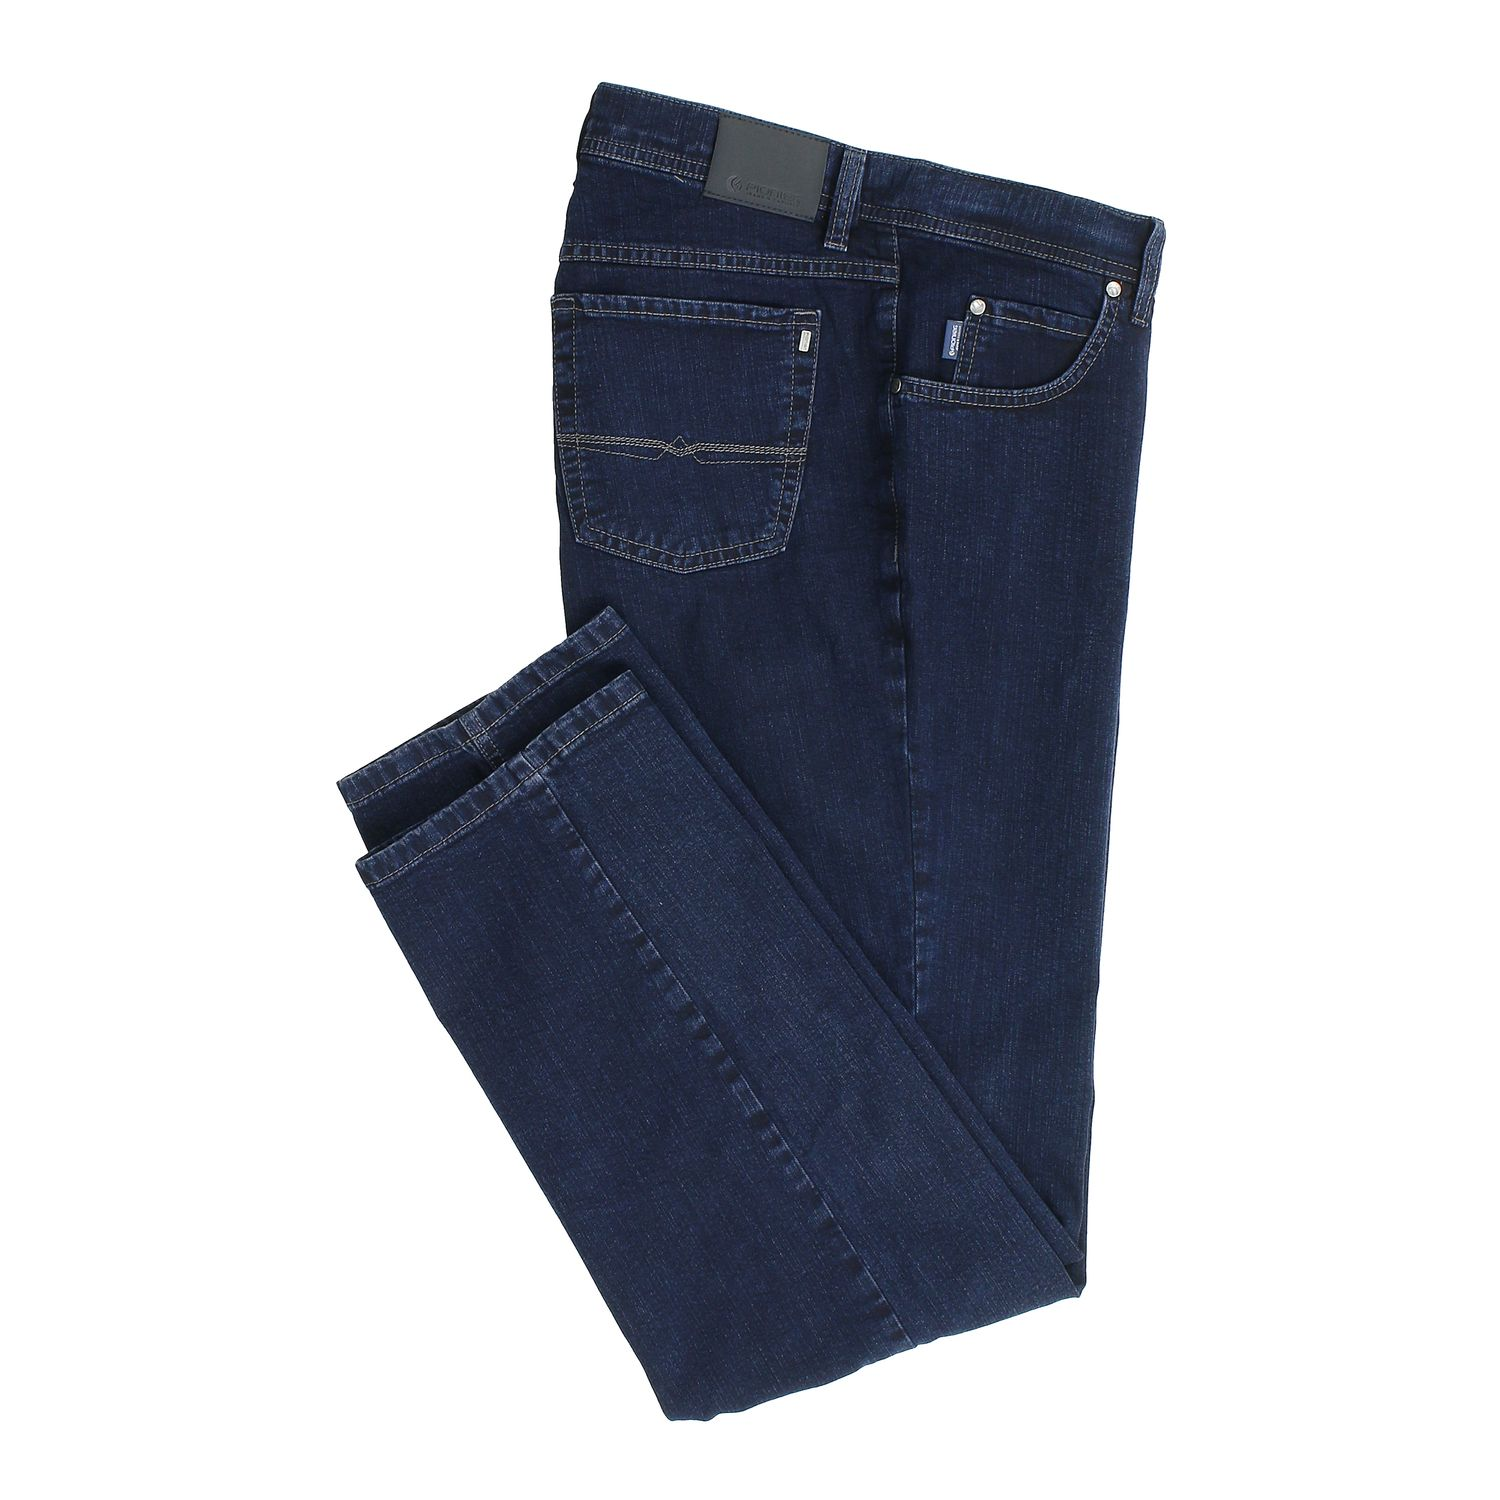 Detail Image to Five-pocket-jeans in dark blue by Pionier in oversizes up to 40, 70 and 85